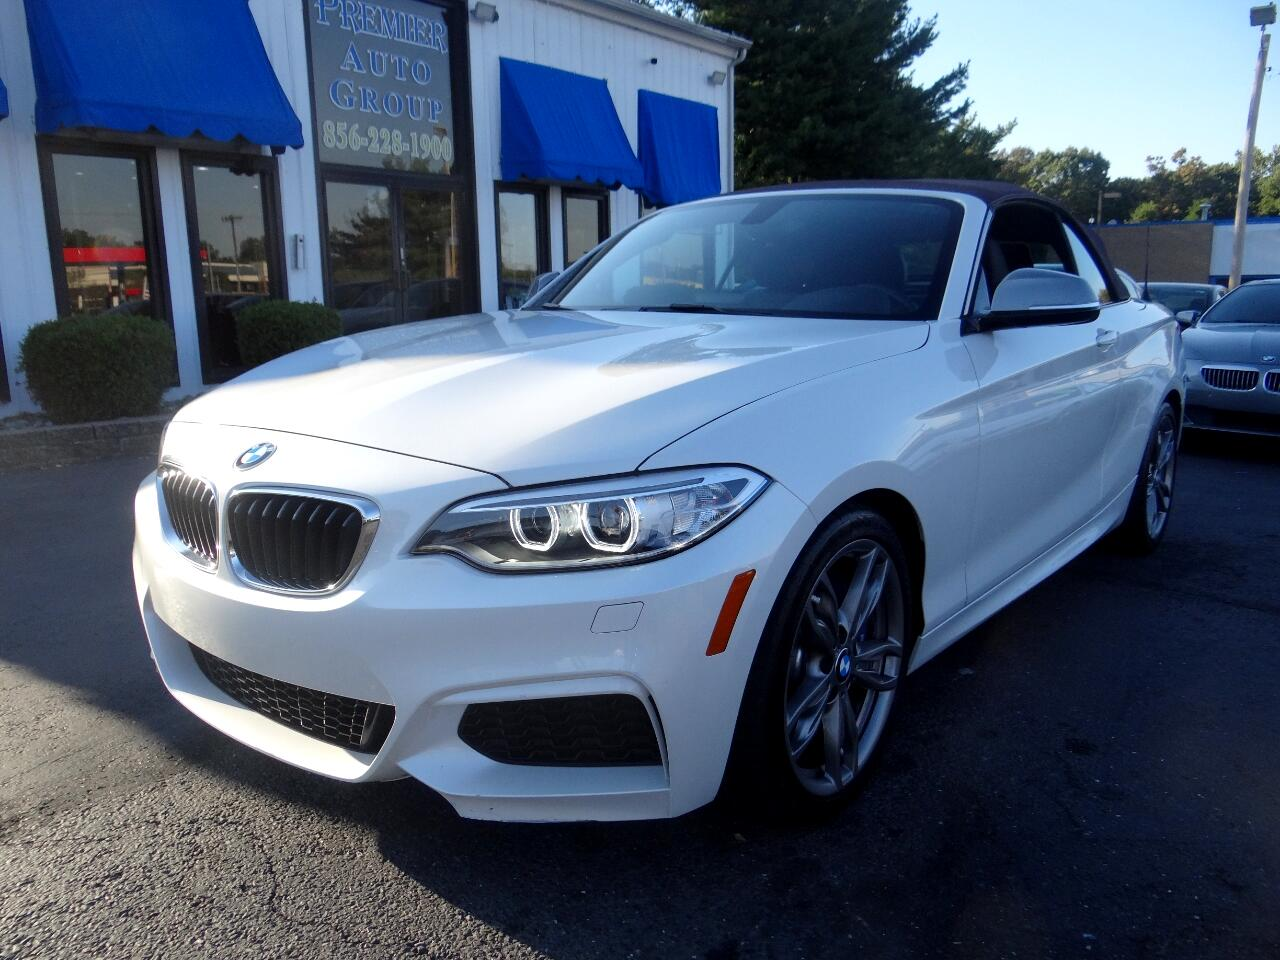 BMW 2 Series 2dr Conv M235i xDrive AWD 2016